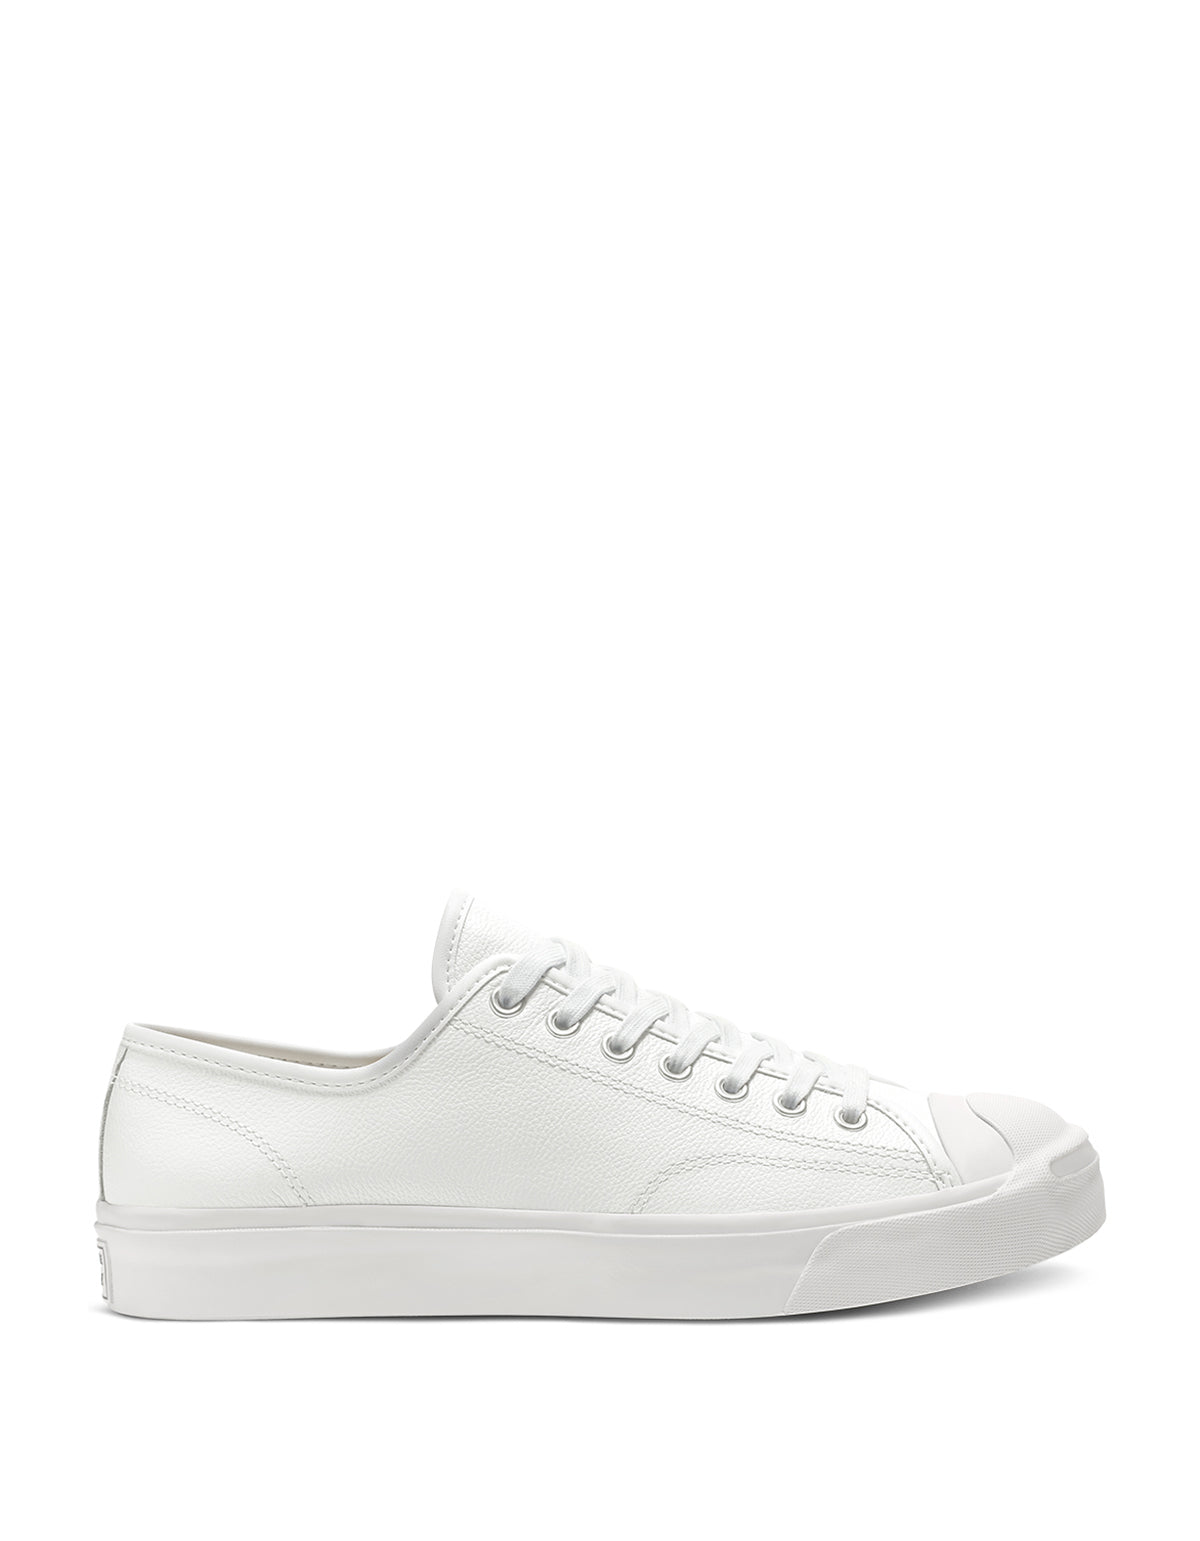 Converse Men's Jack Purcell Foundational Leather Low Top White